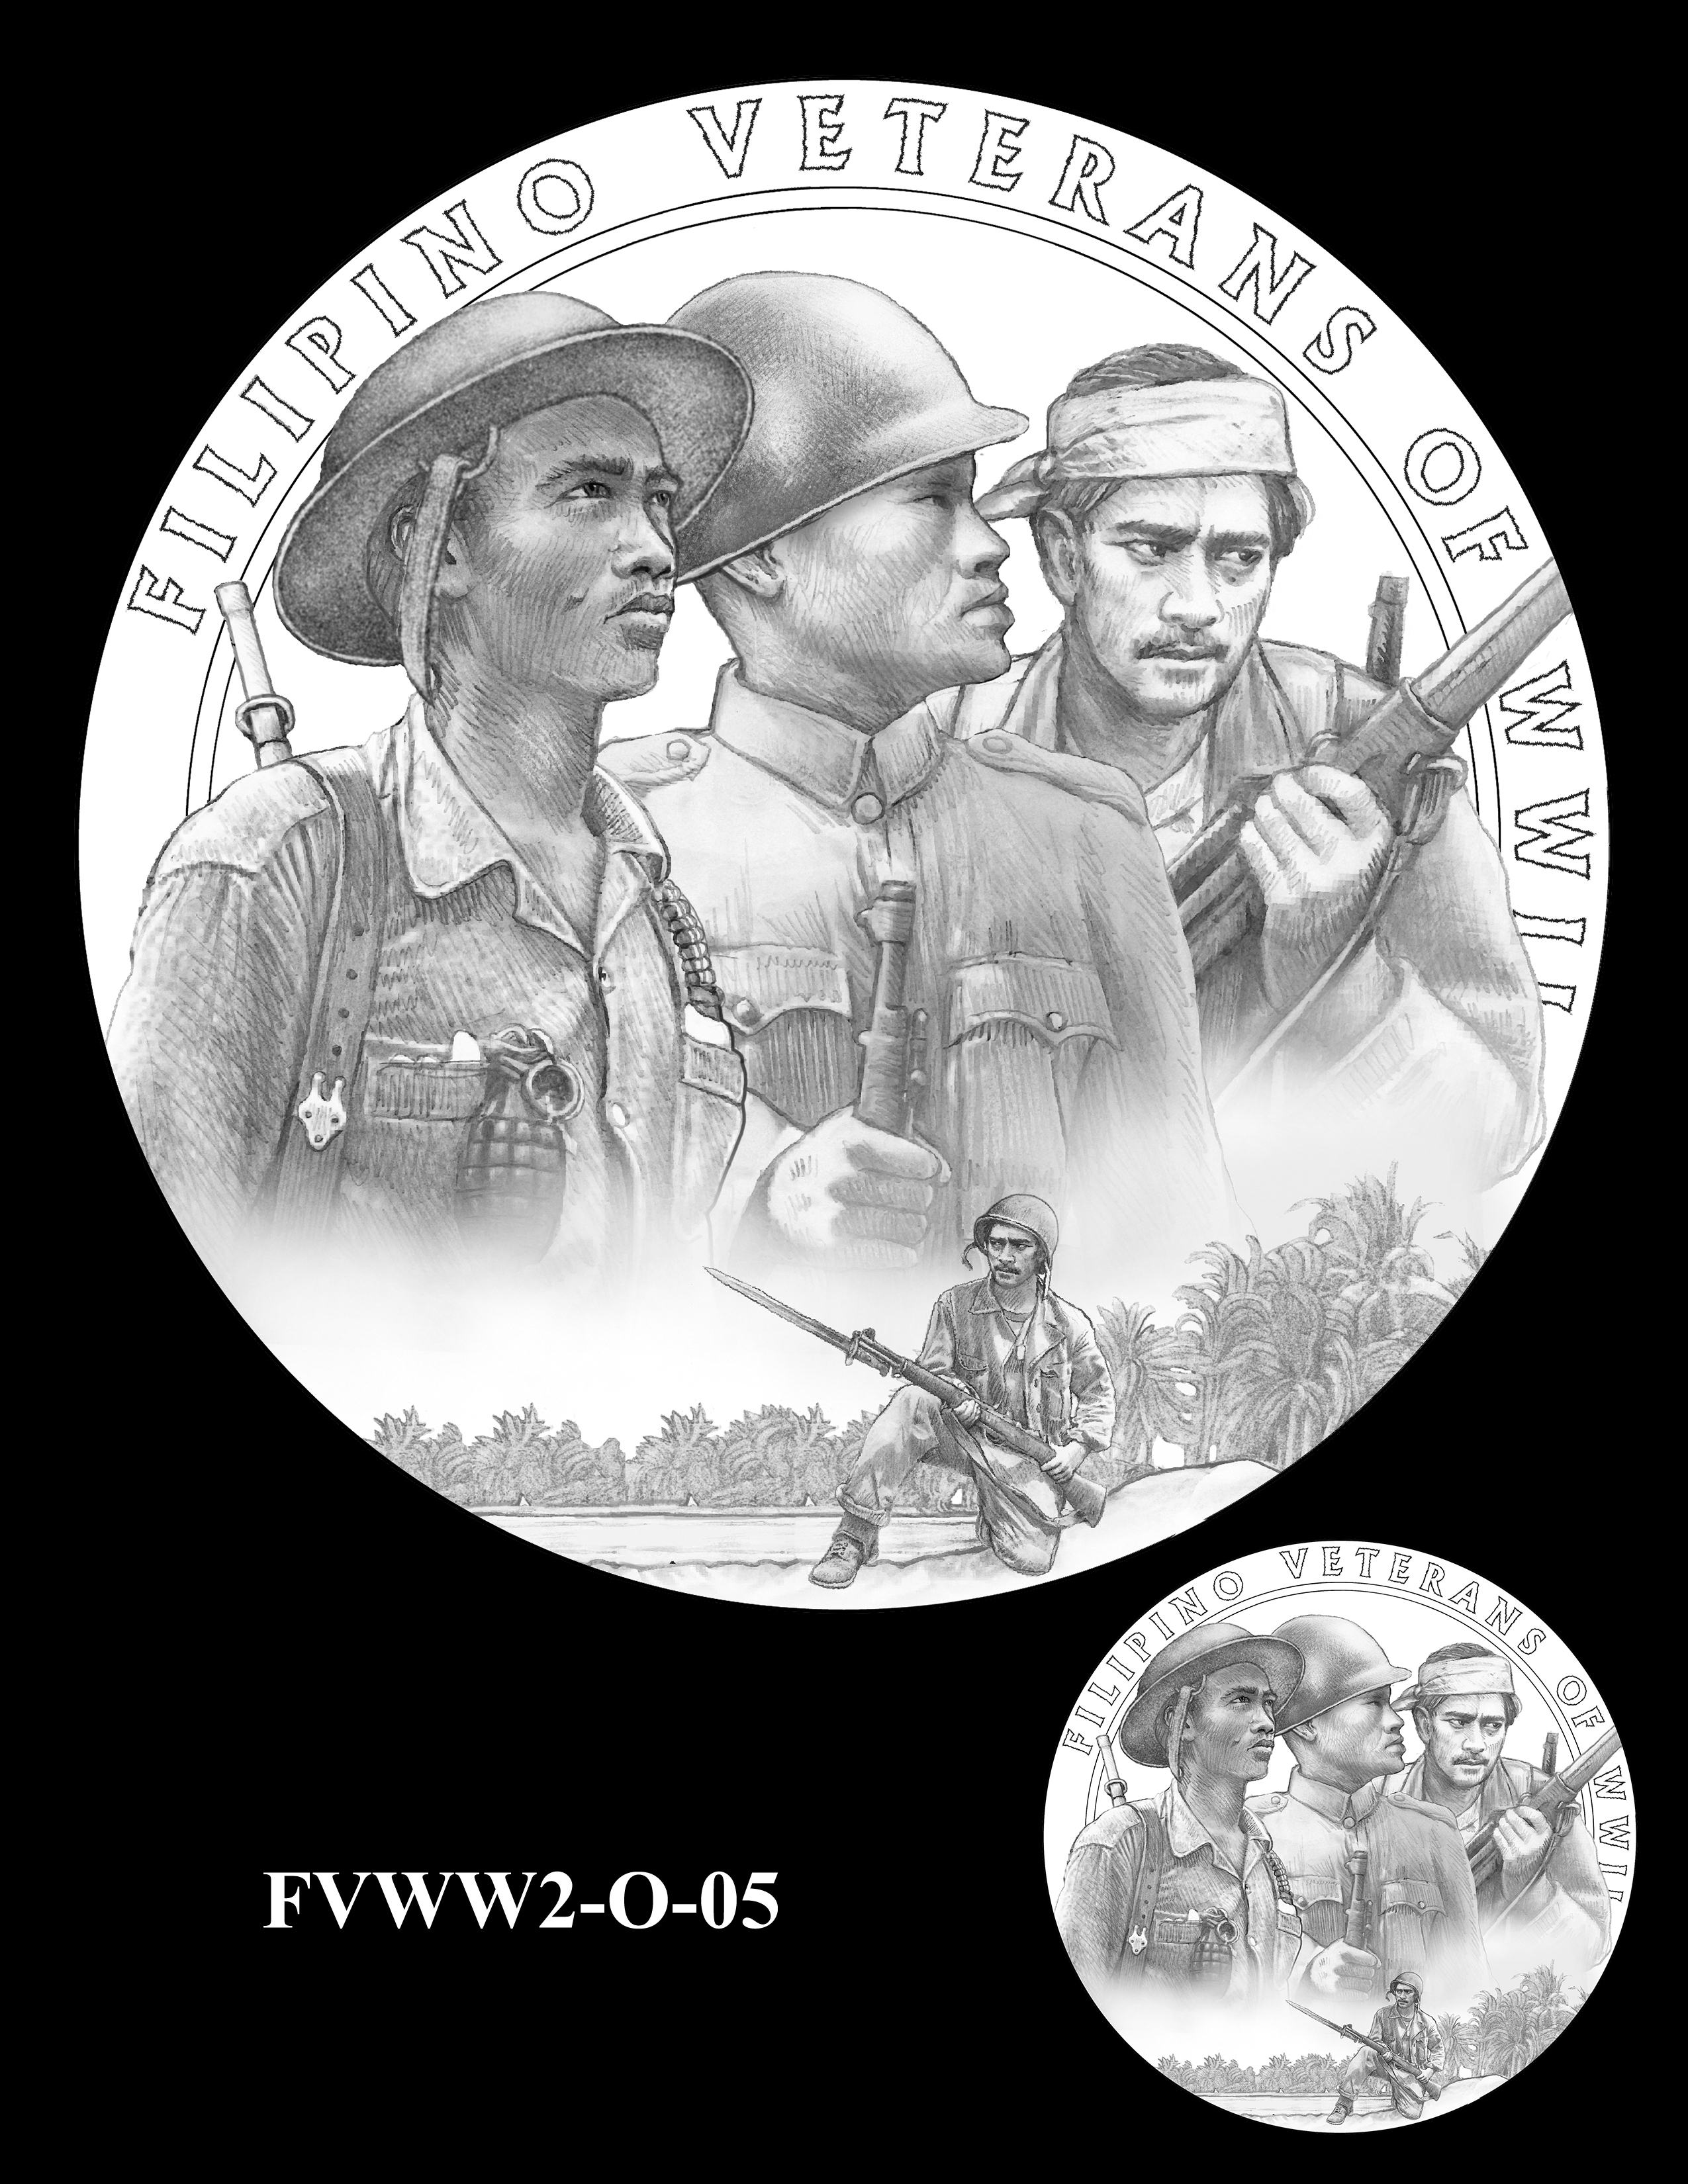 FVWW2-O-05 -- Filipino Veterans of World War II Congressional Gold Medal